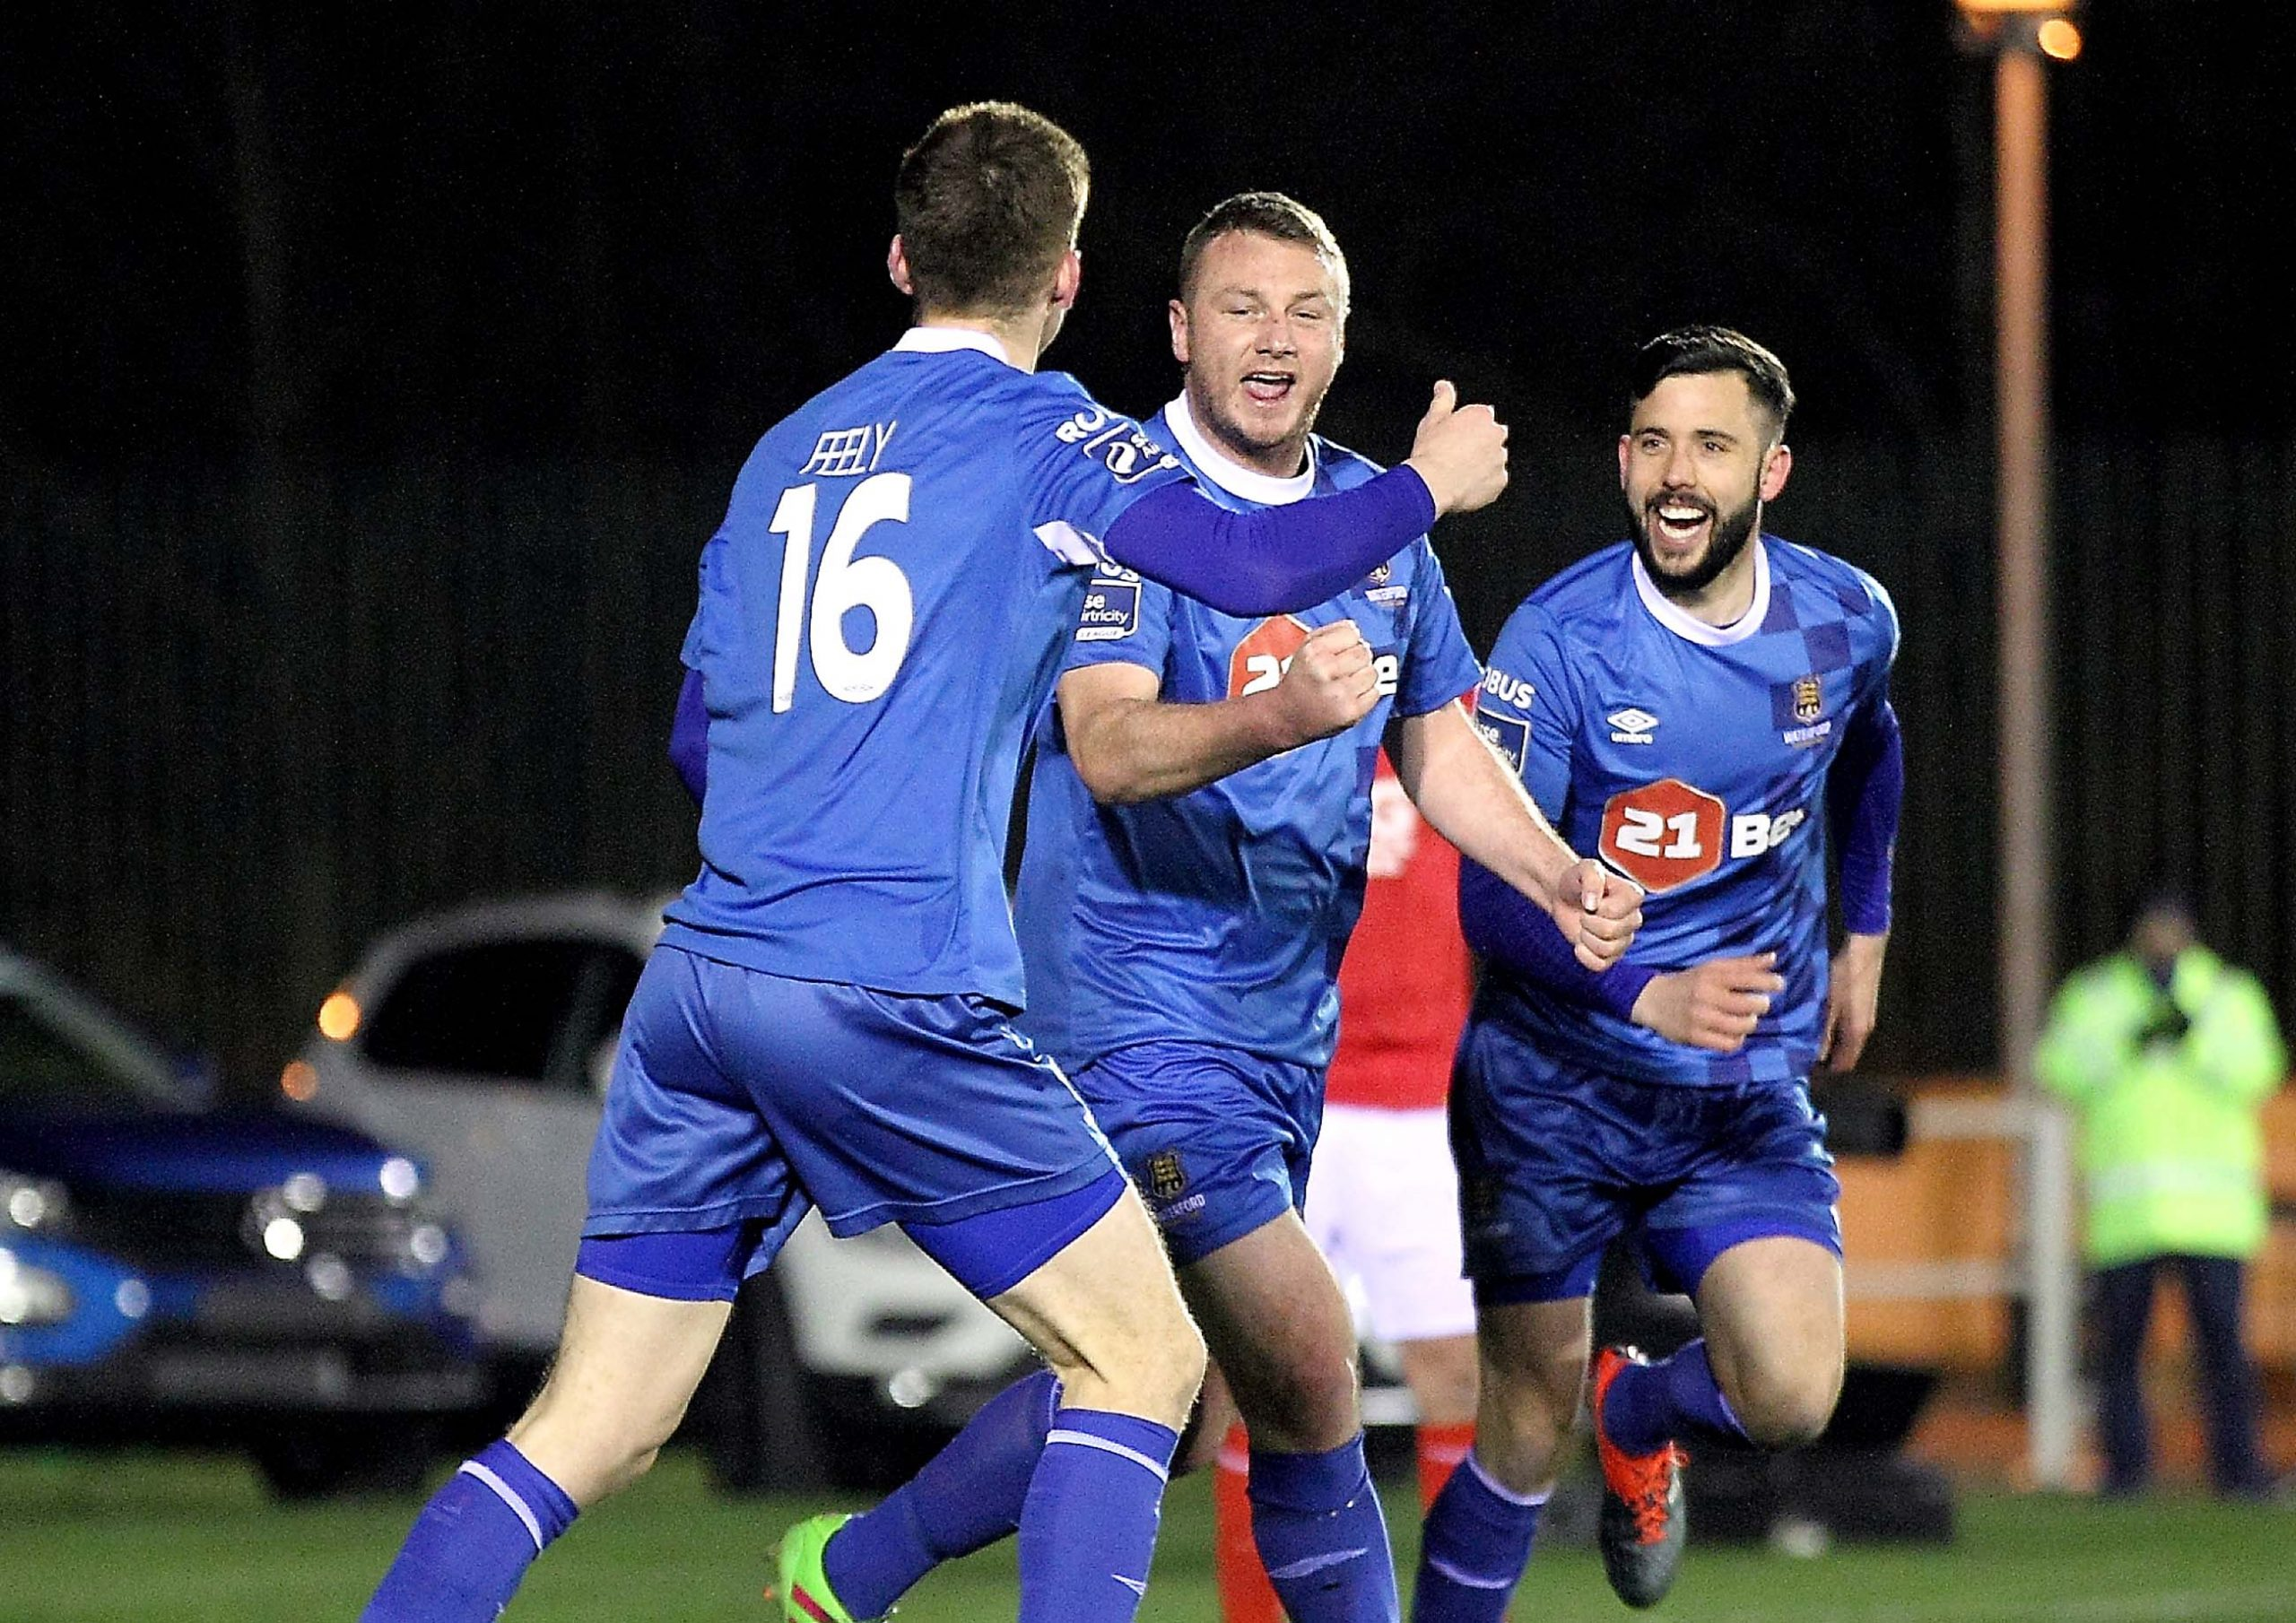 Waterford FC lose one nil to St Patrick's Athletic.